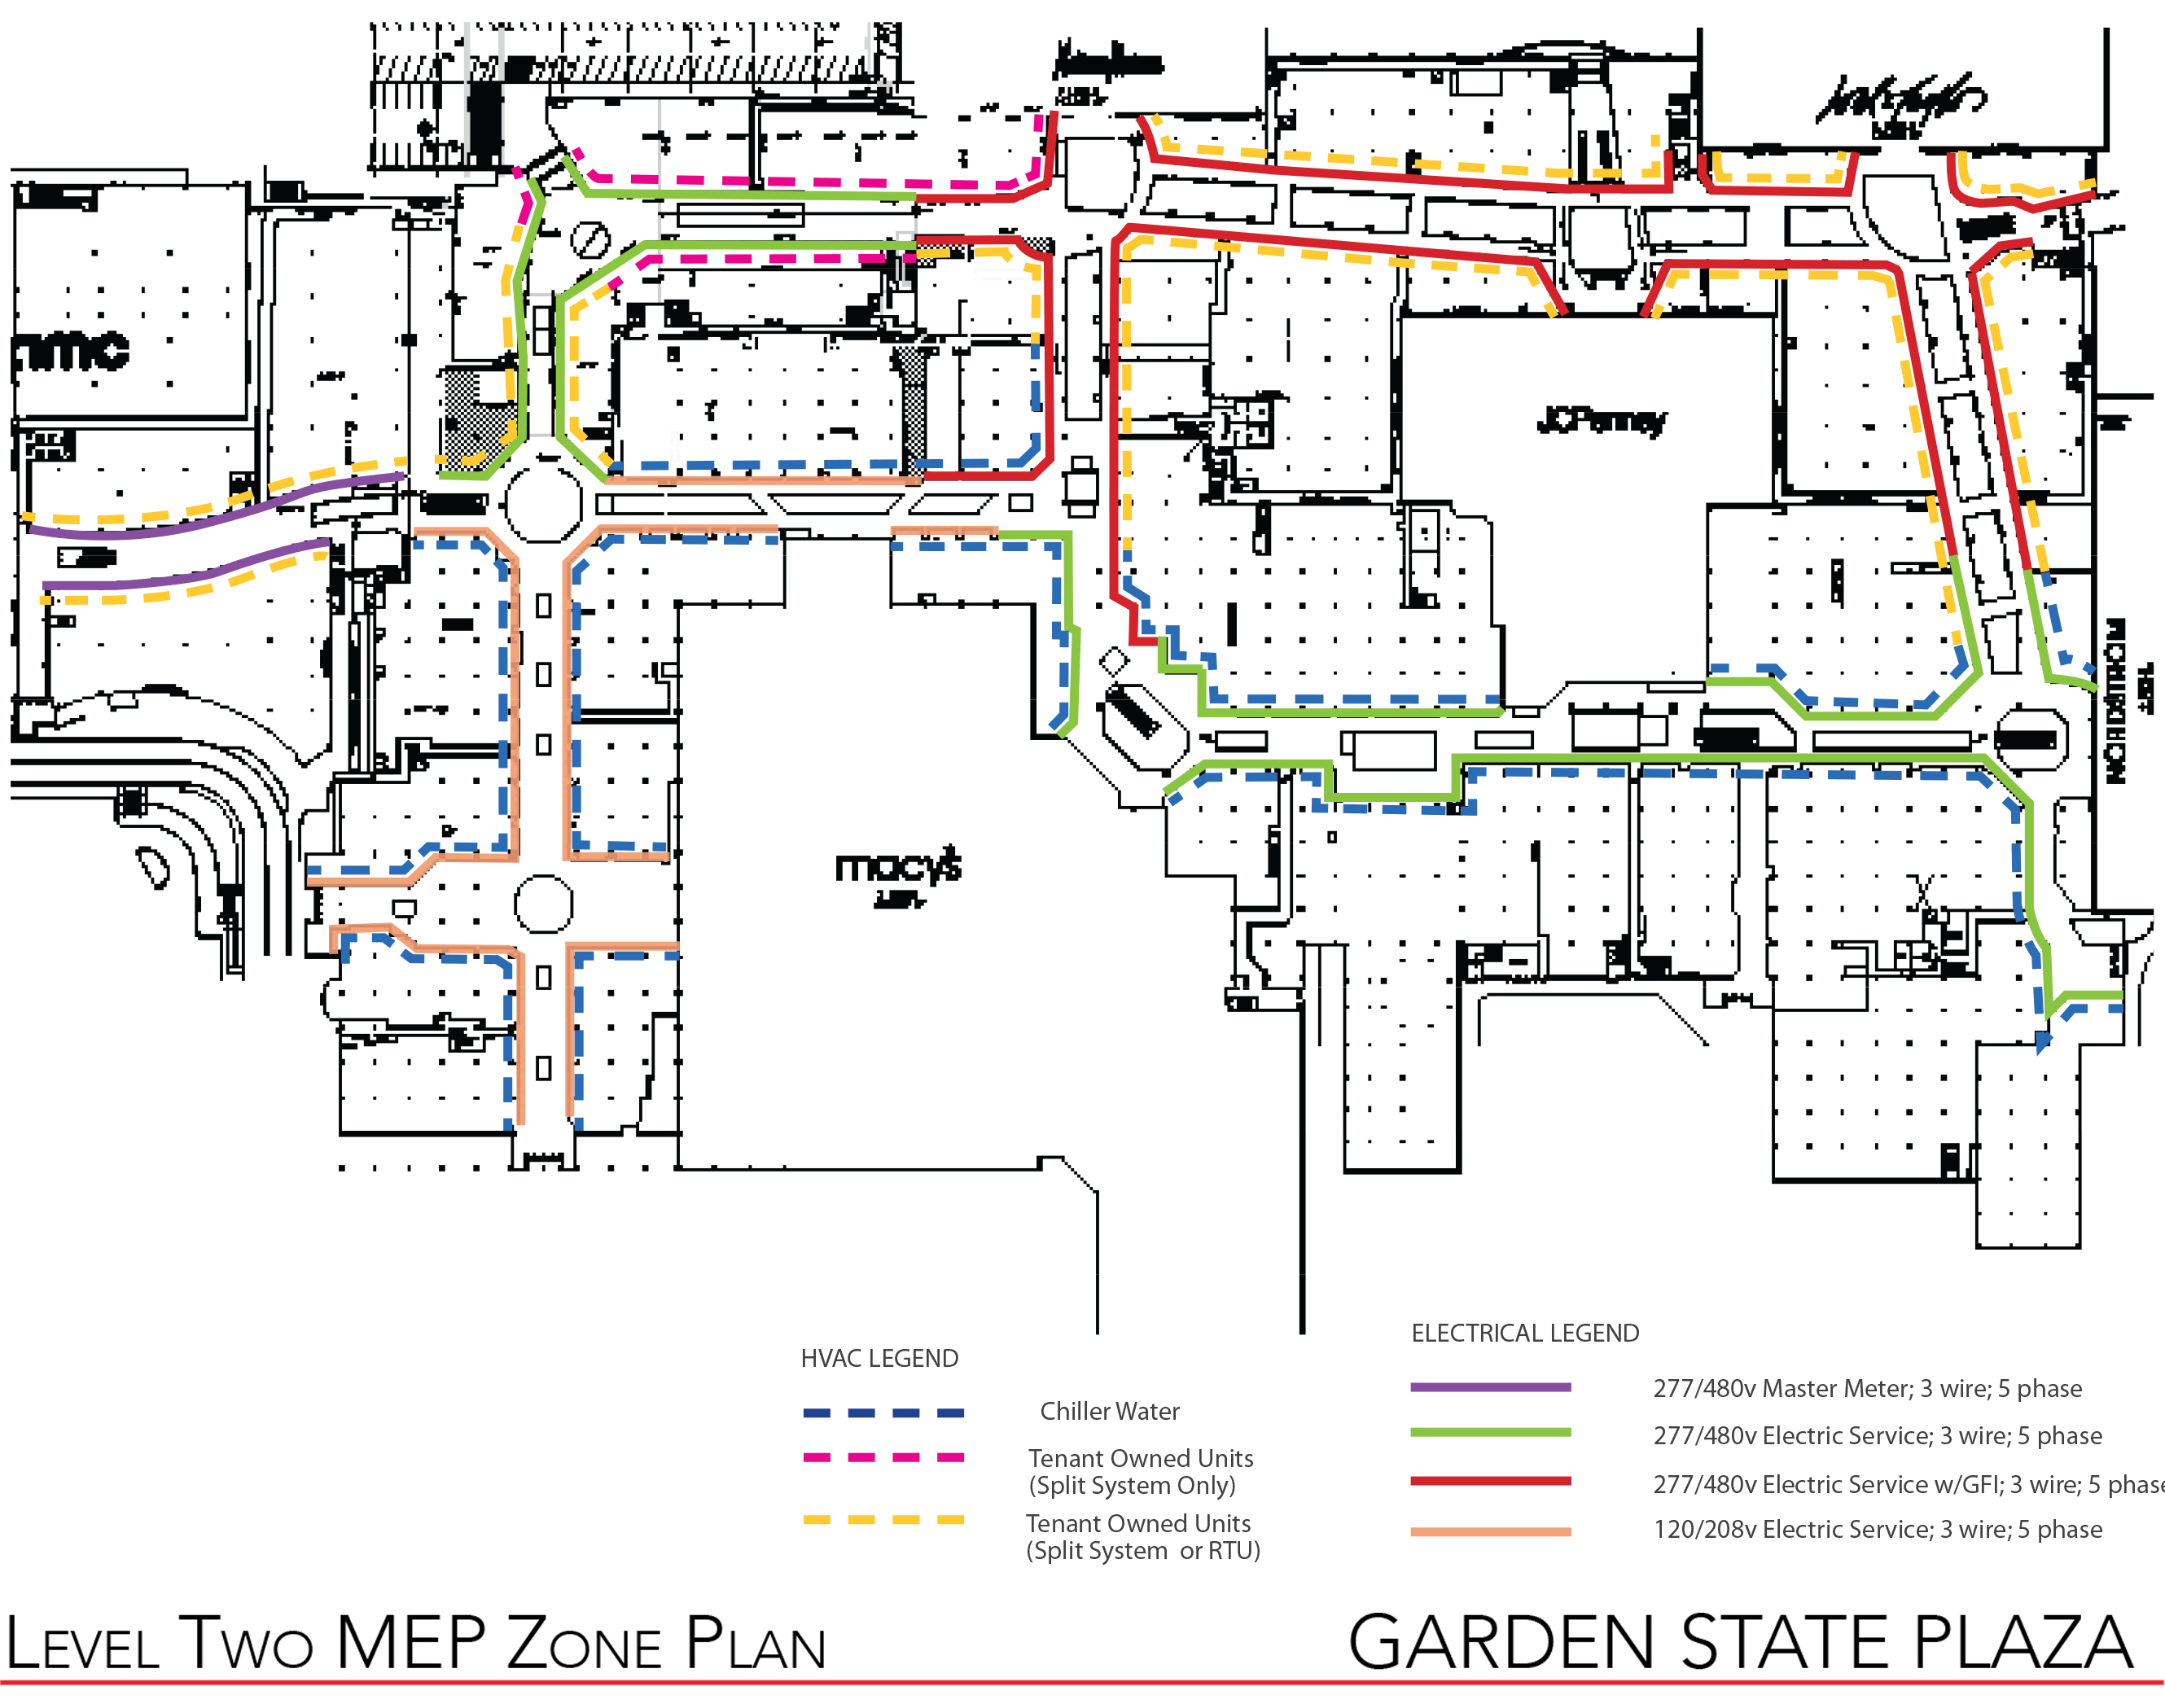 Garden State Plaza – URW Tenant Coordination on valley fair store map, garden state shooting, lenox square store map, houston galleria store map, lloyd center store map, towson town center store map, glendale galleria store map, southcenter store map, polaris fashion place store map, sawgrass mills store map, westfield garden state plaza map, bellevue square store map,